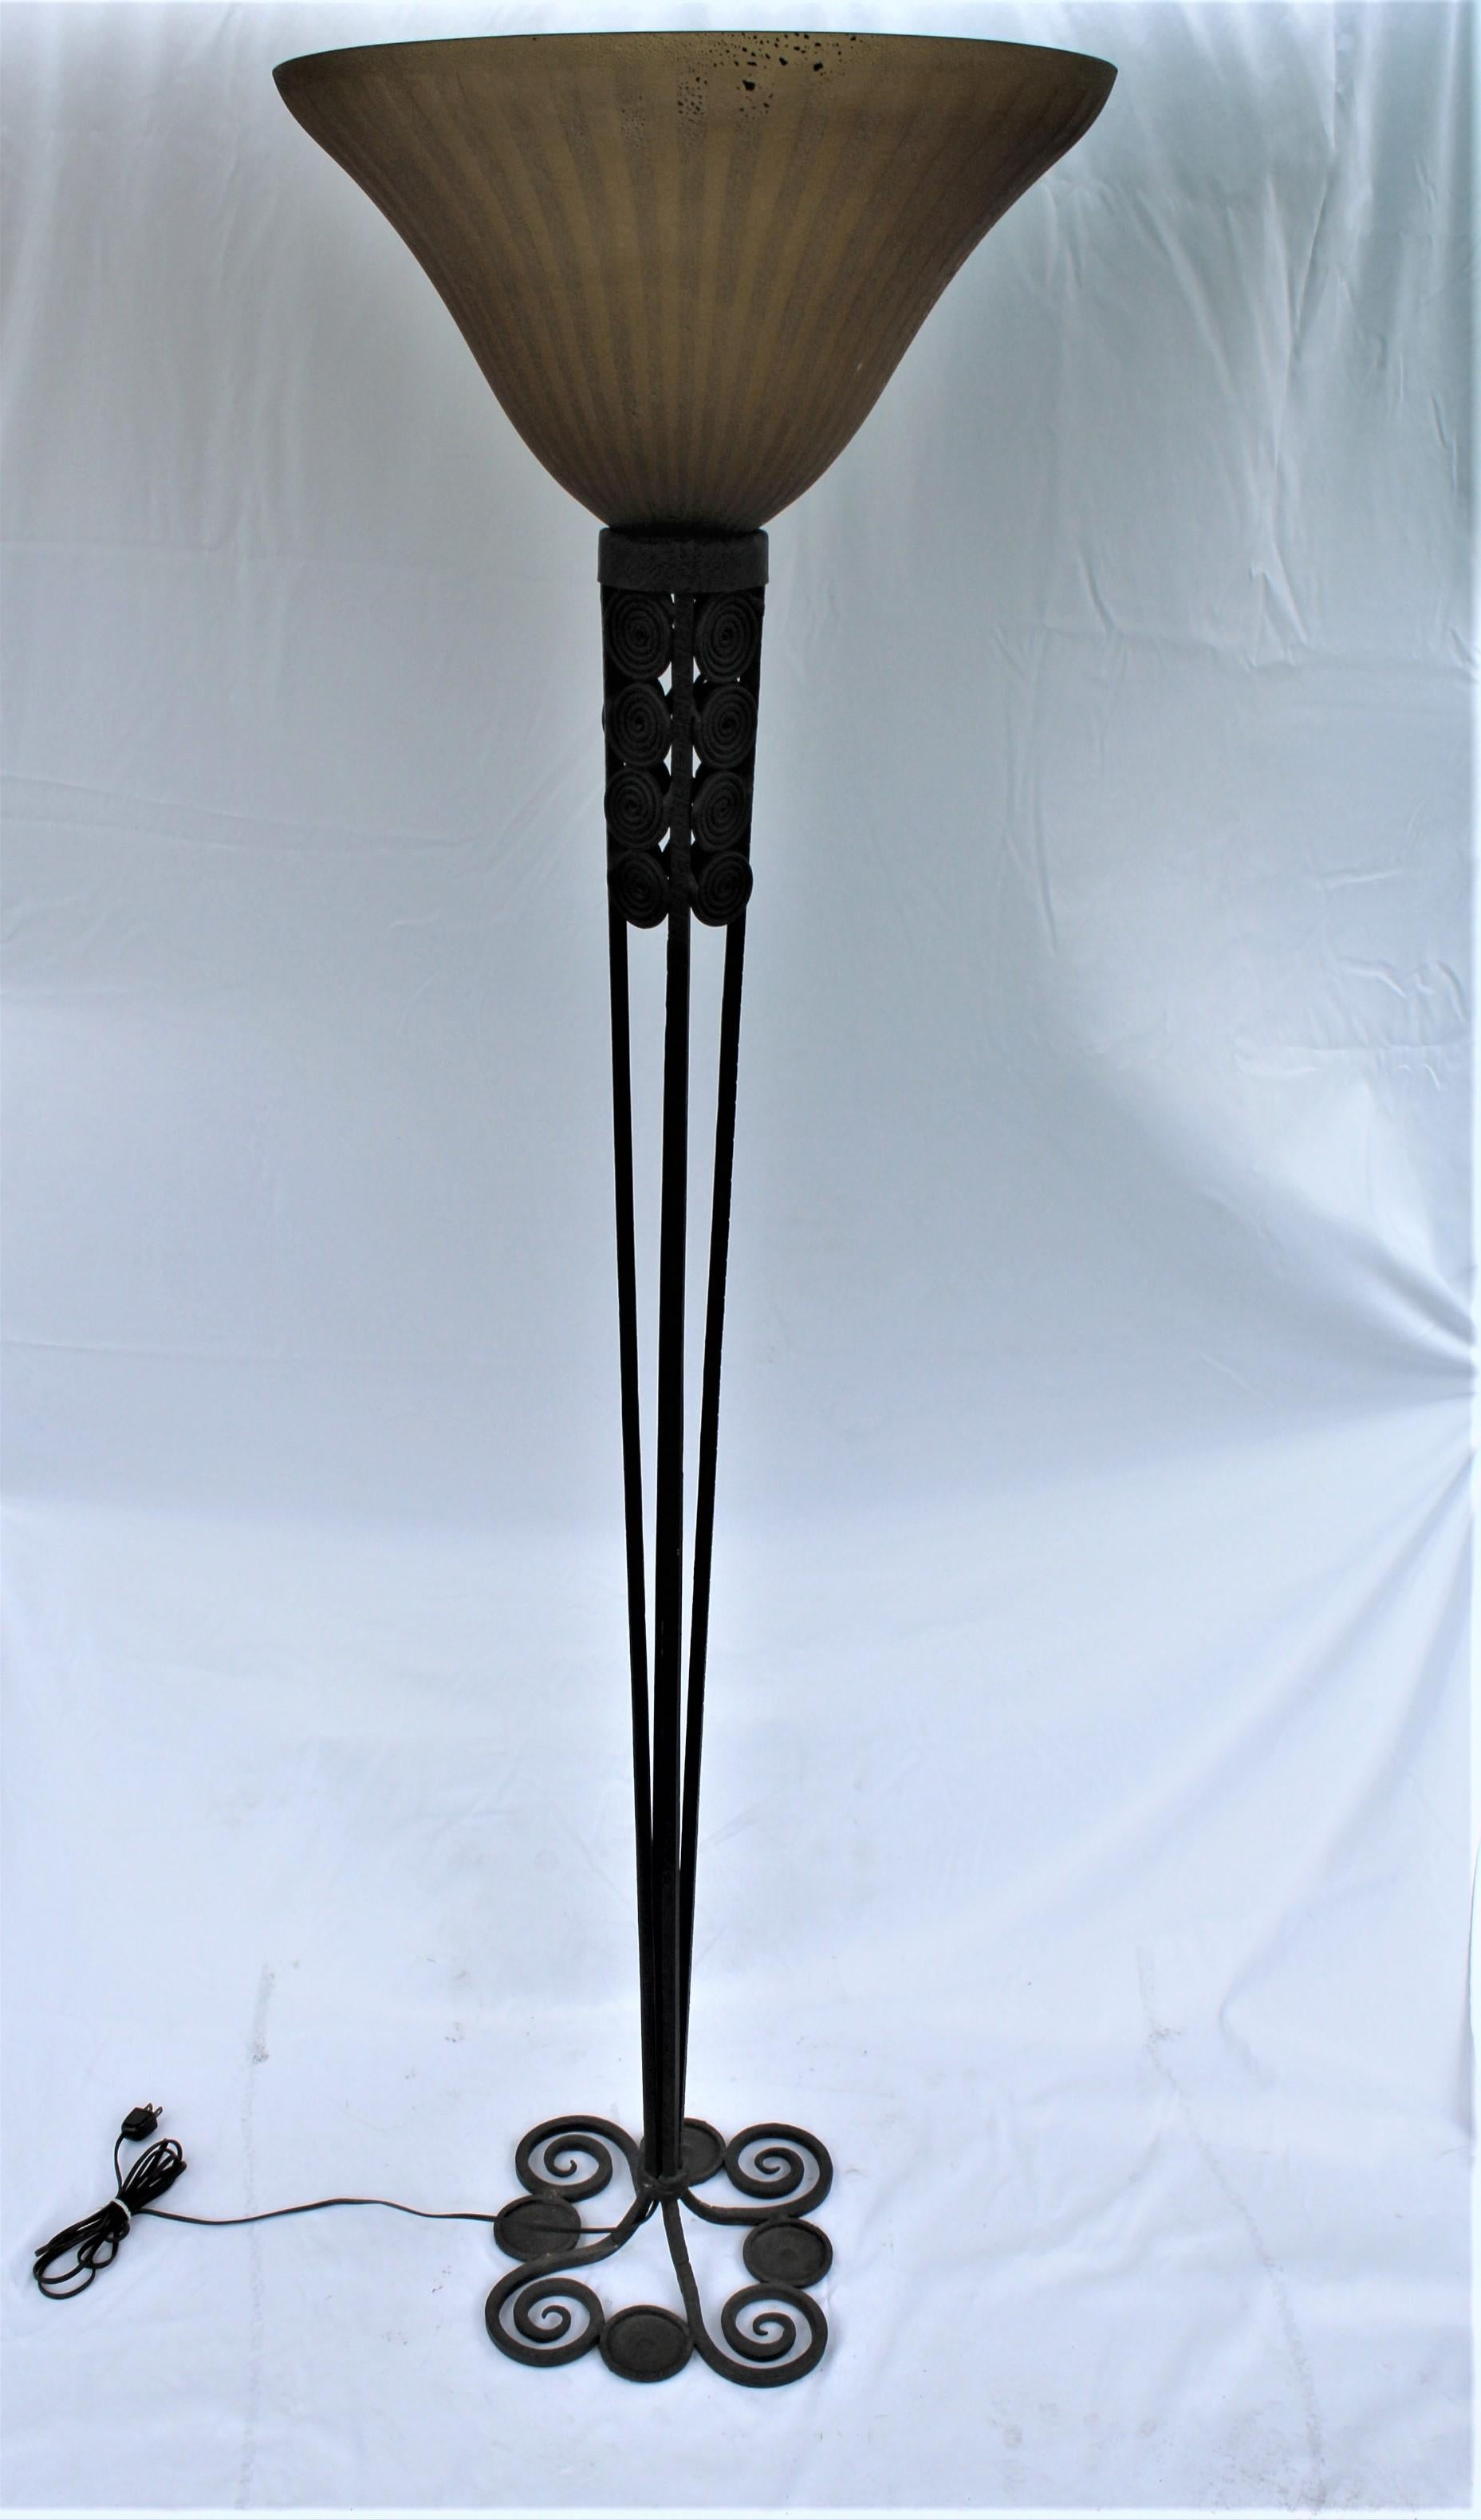 Modern Deco Floor Lamp Art Glass Shade Forged Iron Base For Sale At 1stdibs